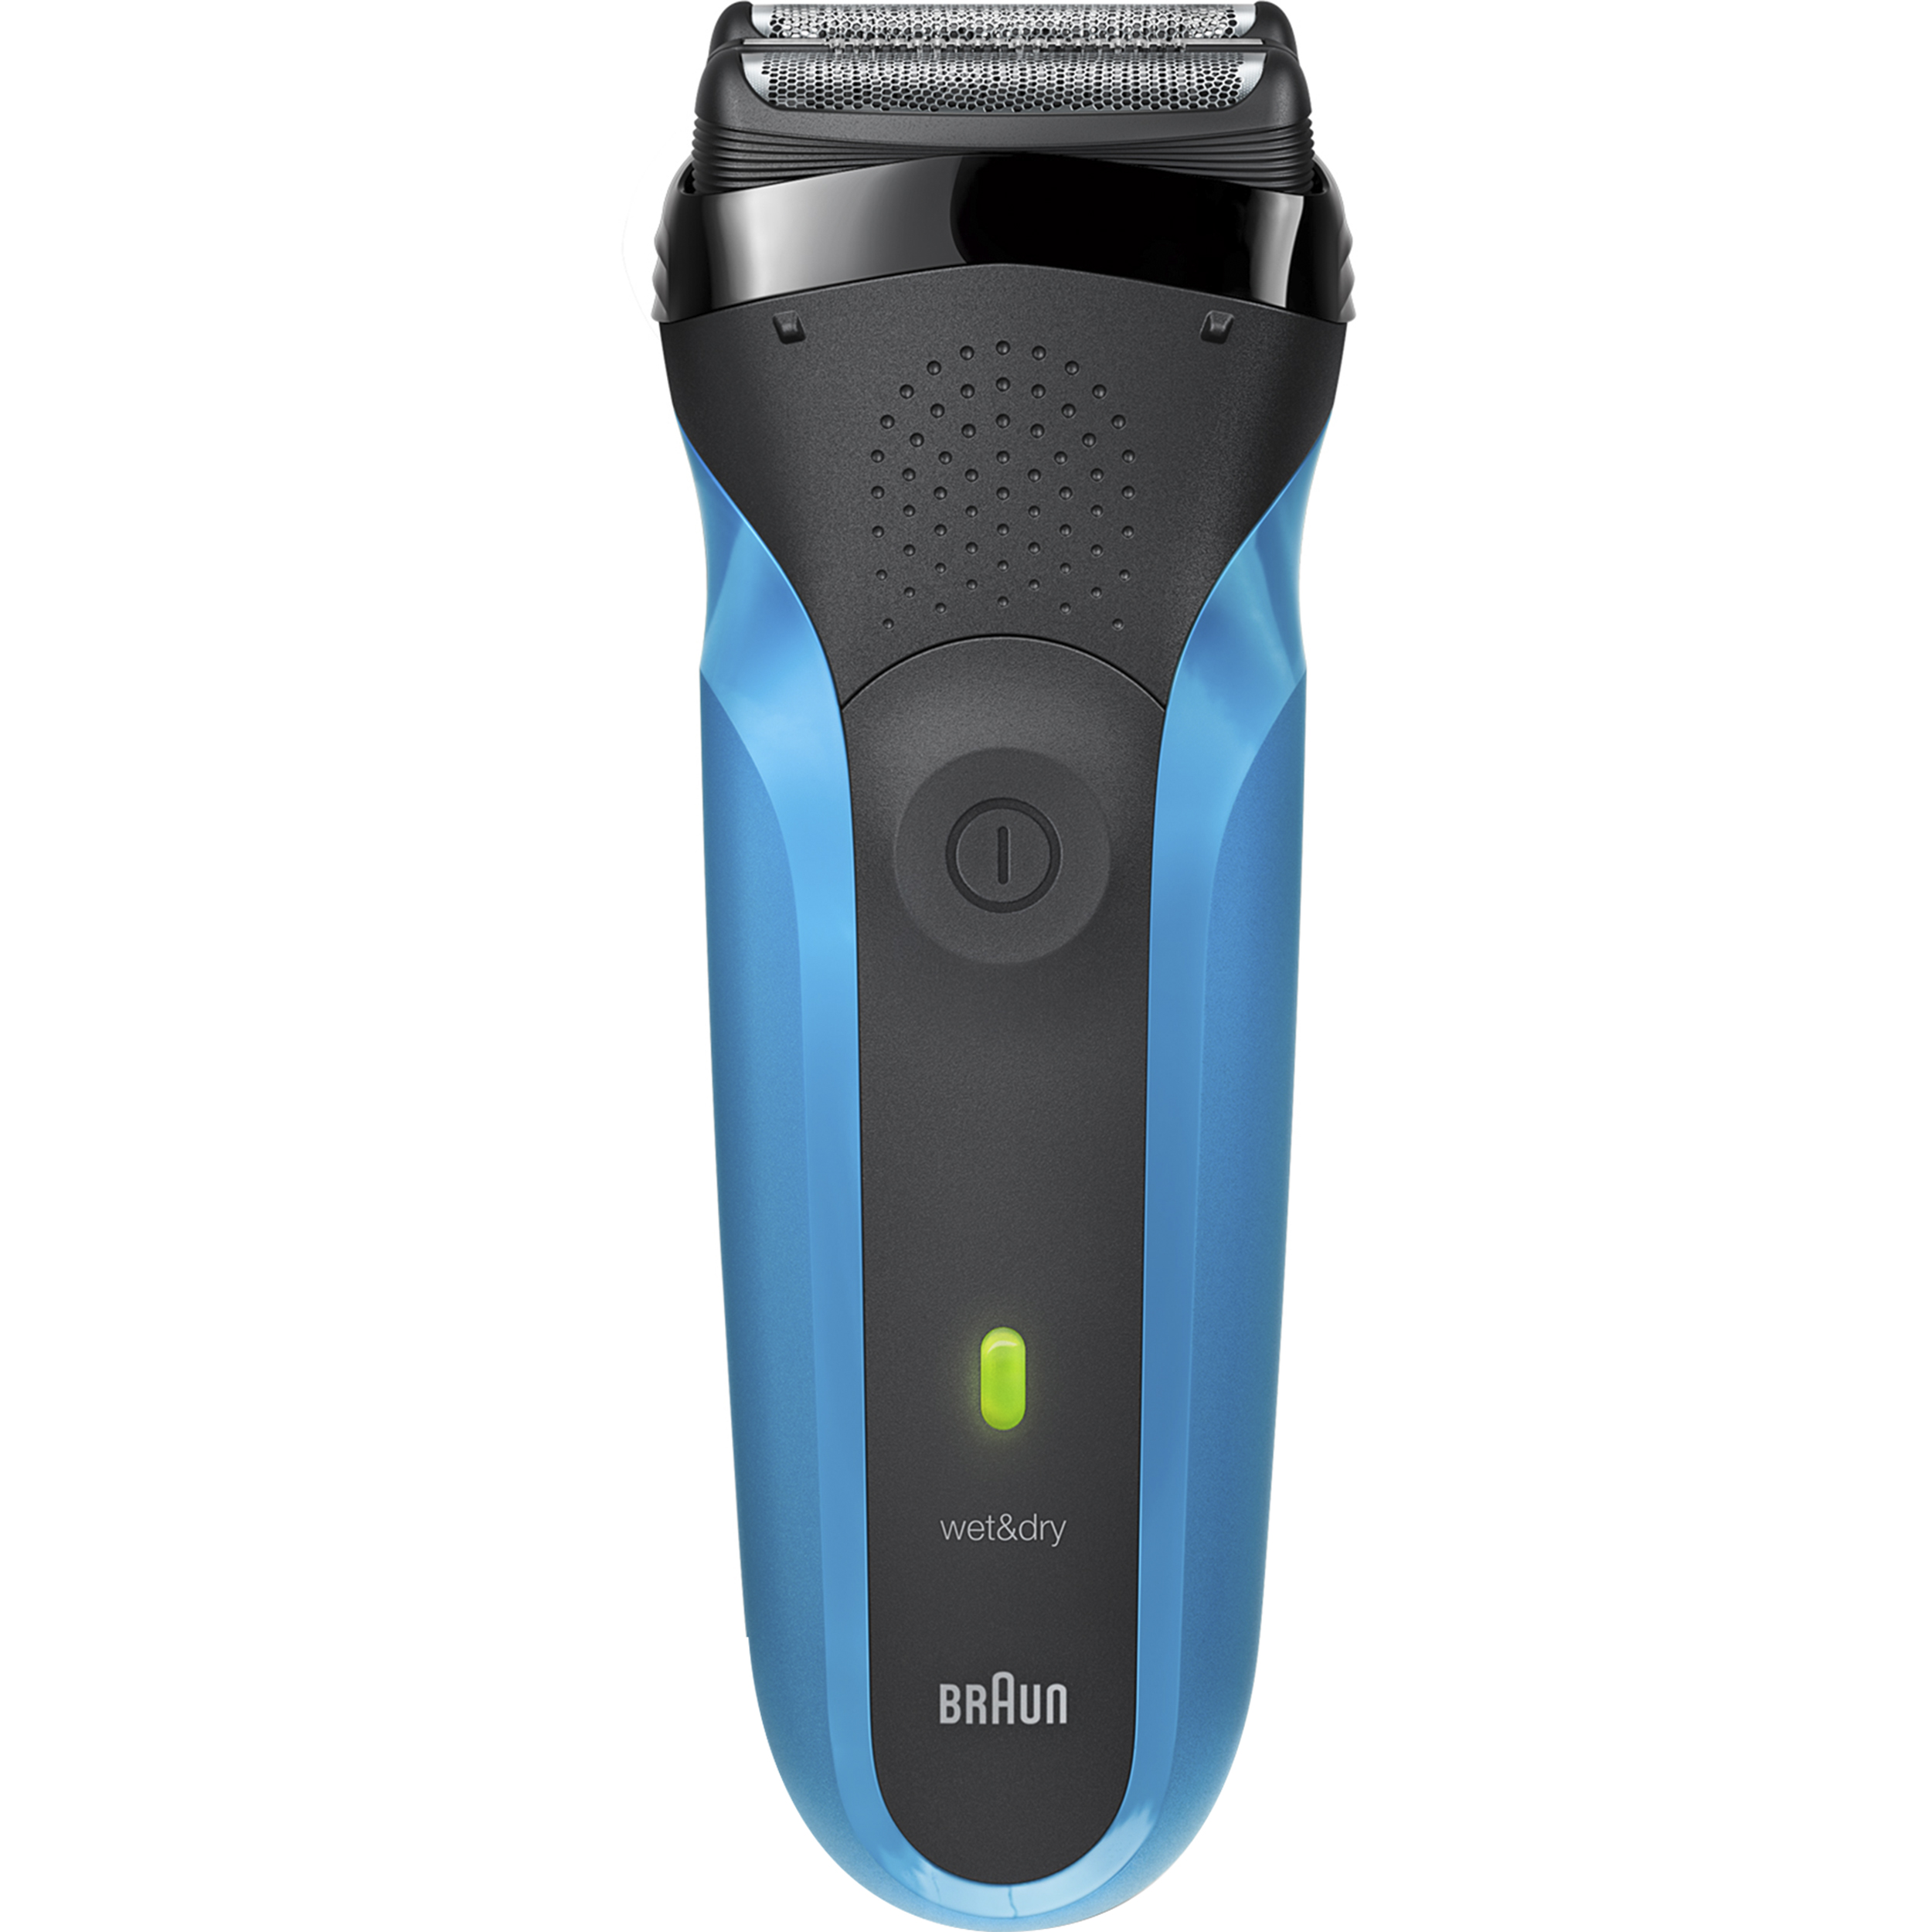 288d793ef Braun Series 3 310s ($10 Rebate Available) Wet & Dry Electric Shaver for Men  / Rechargeable Electric Razor, Blue - Walmart.com